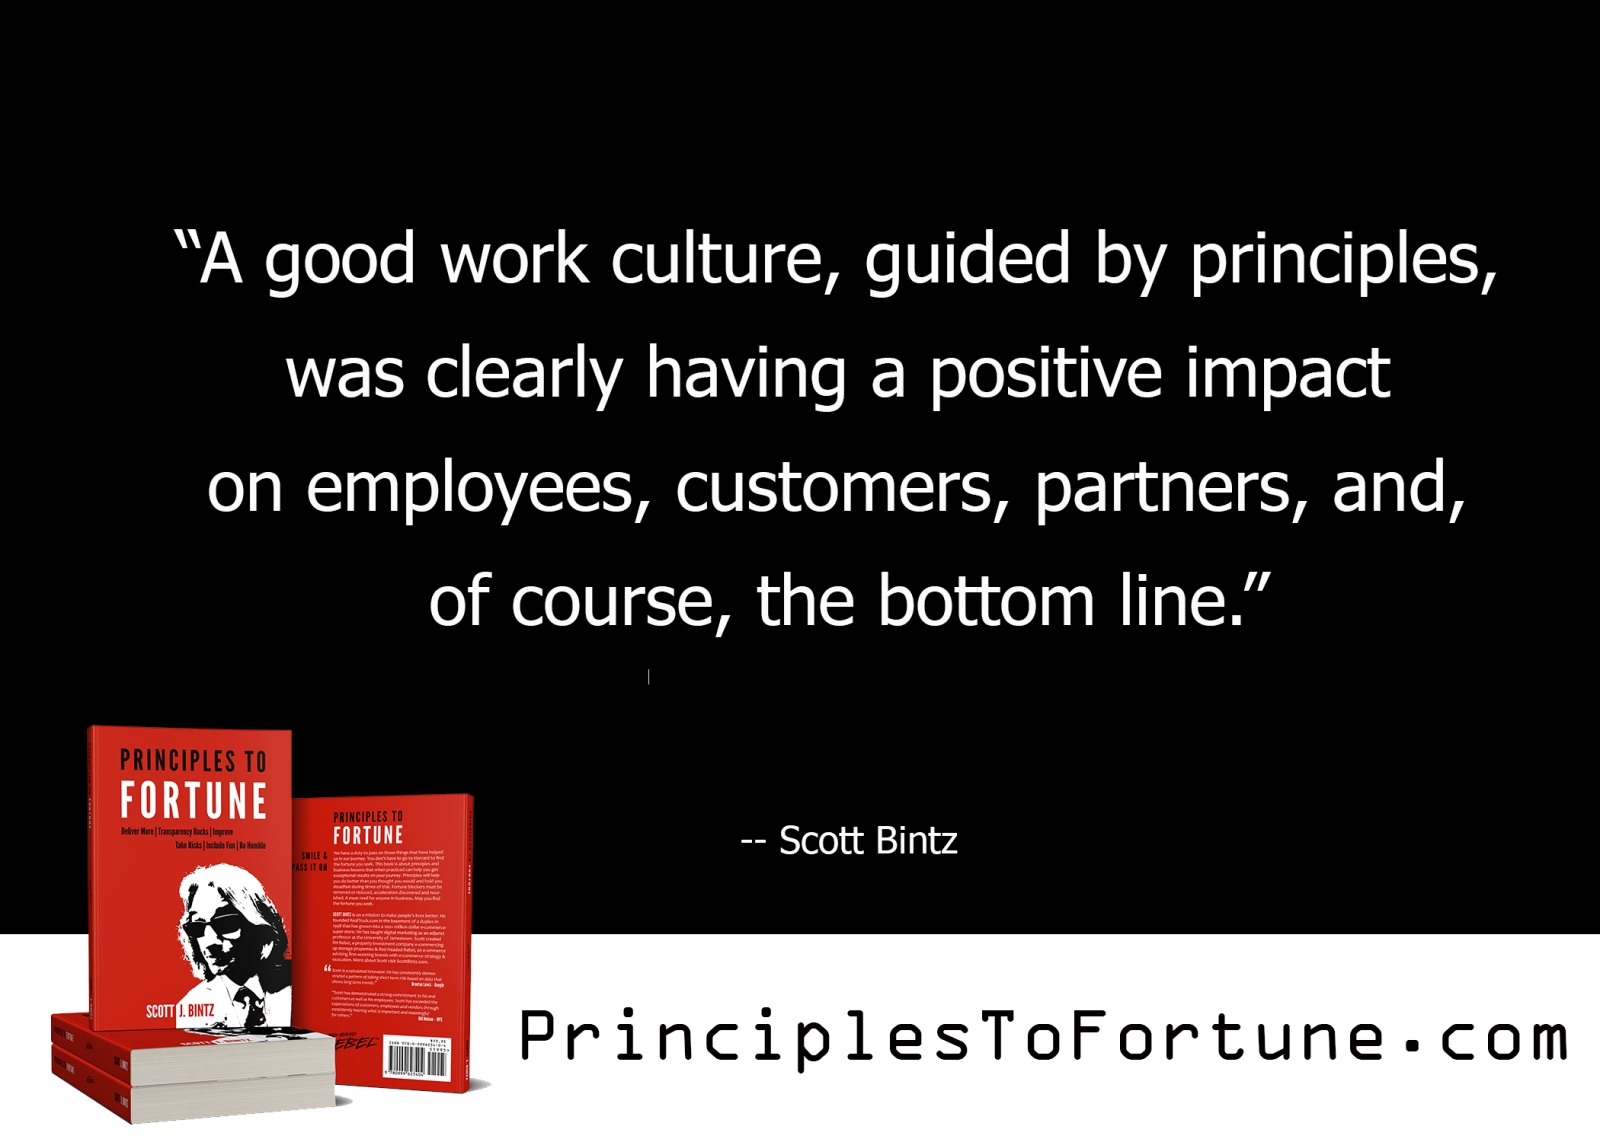 """""""A good work culture, guided by principles, was clearly having a positive impact on employees, customers, partners, and, of course, the bottom line."""" -- Quote from the Book, Principles To Fortune by Scott Bintz"""